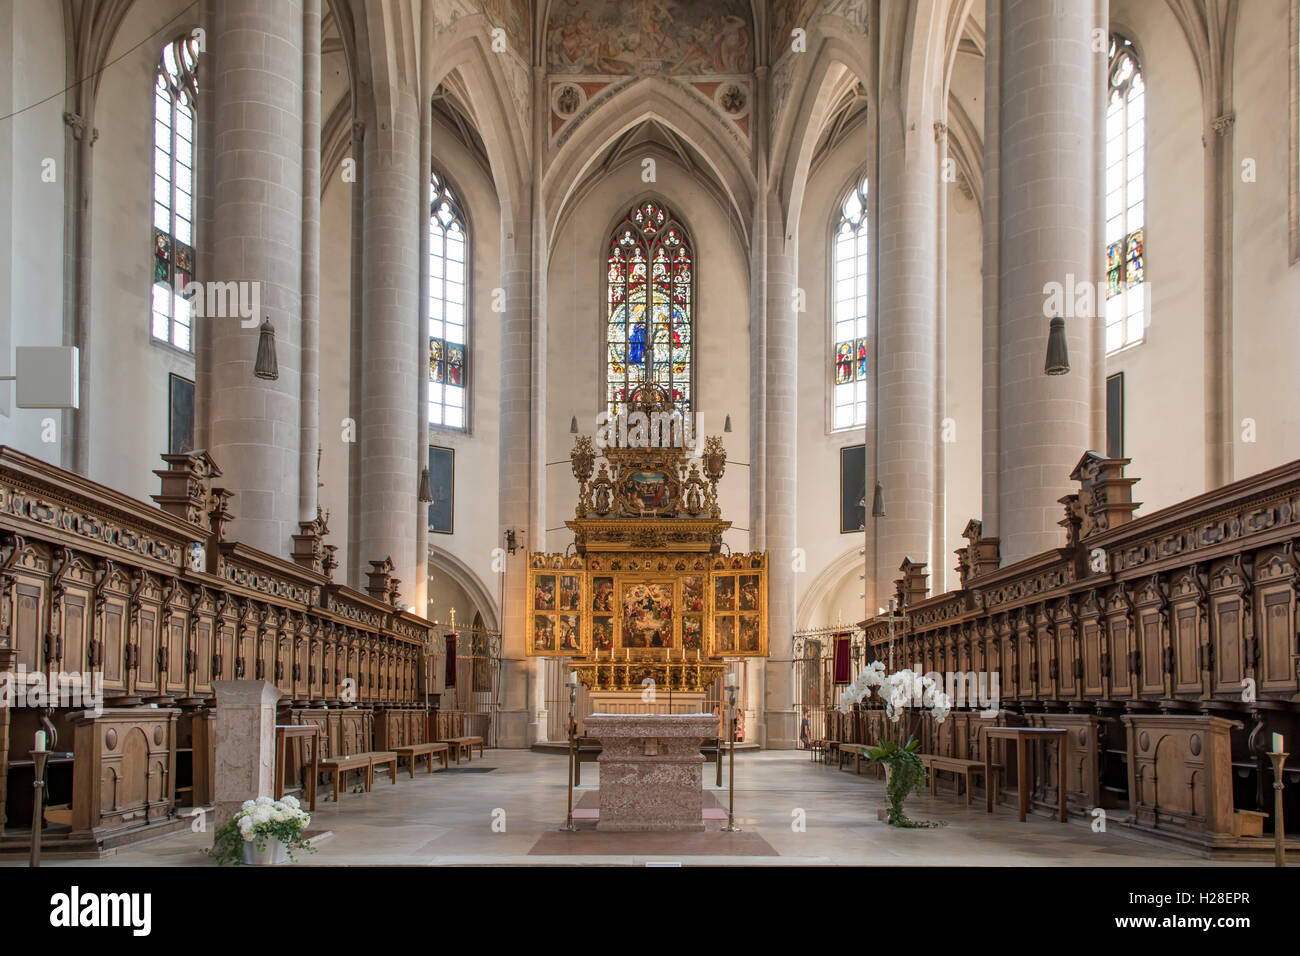 Altar and Chancel in Frauenmunster, Ingolstadt, Germany Stock Photo